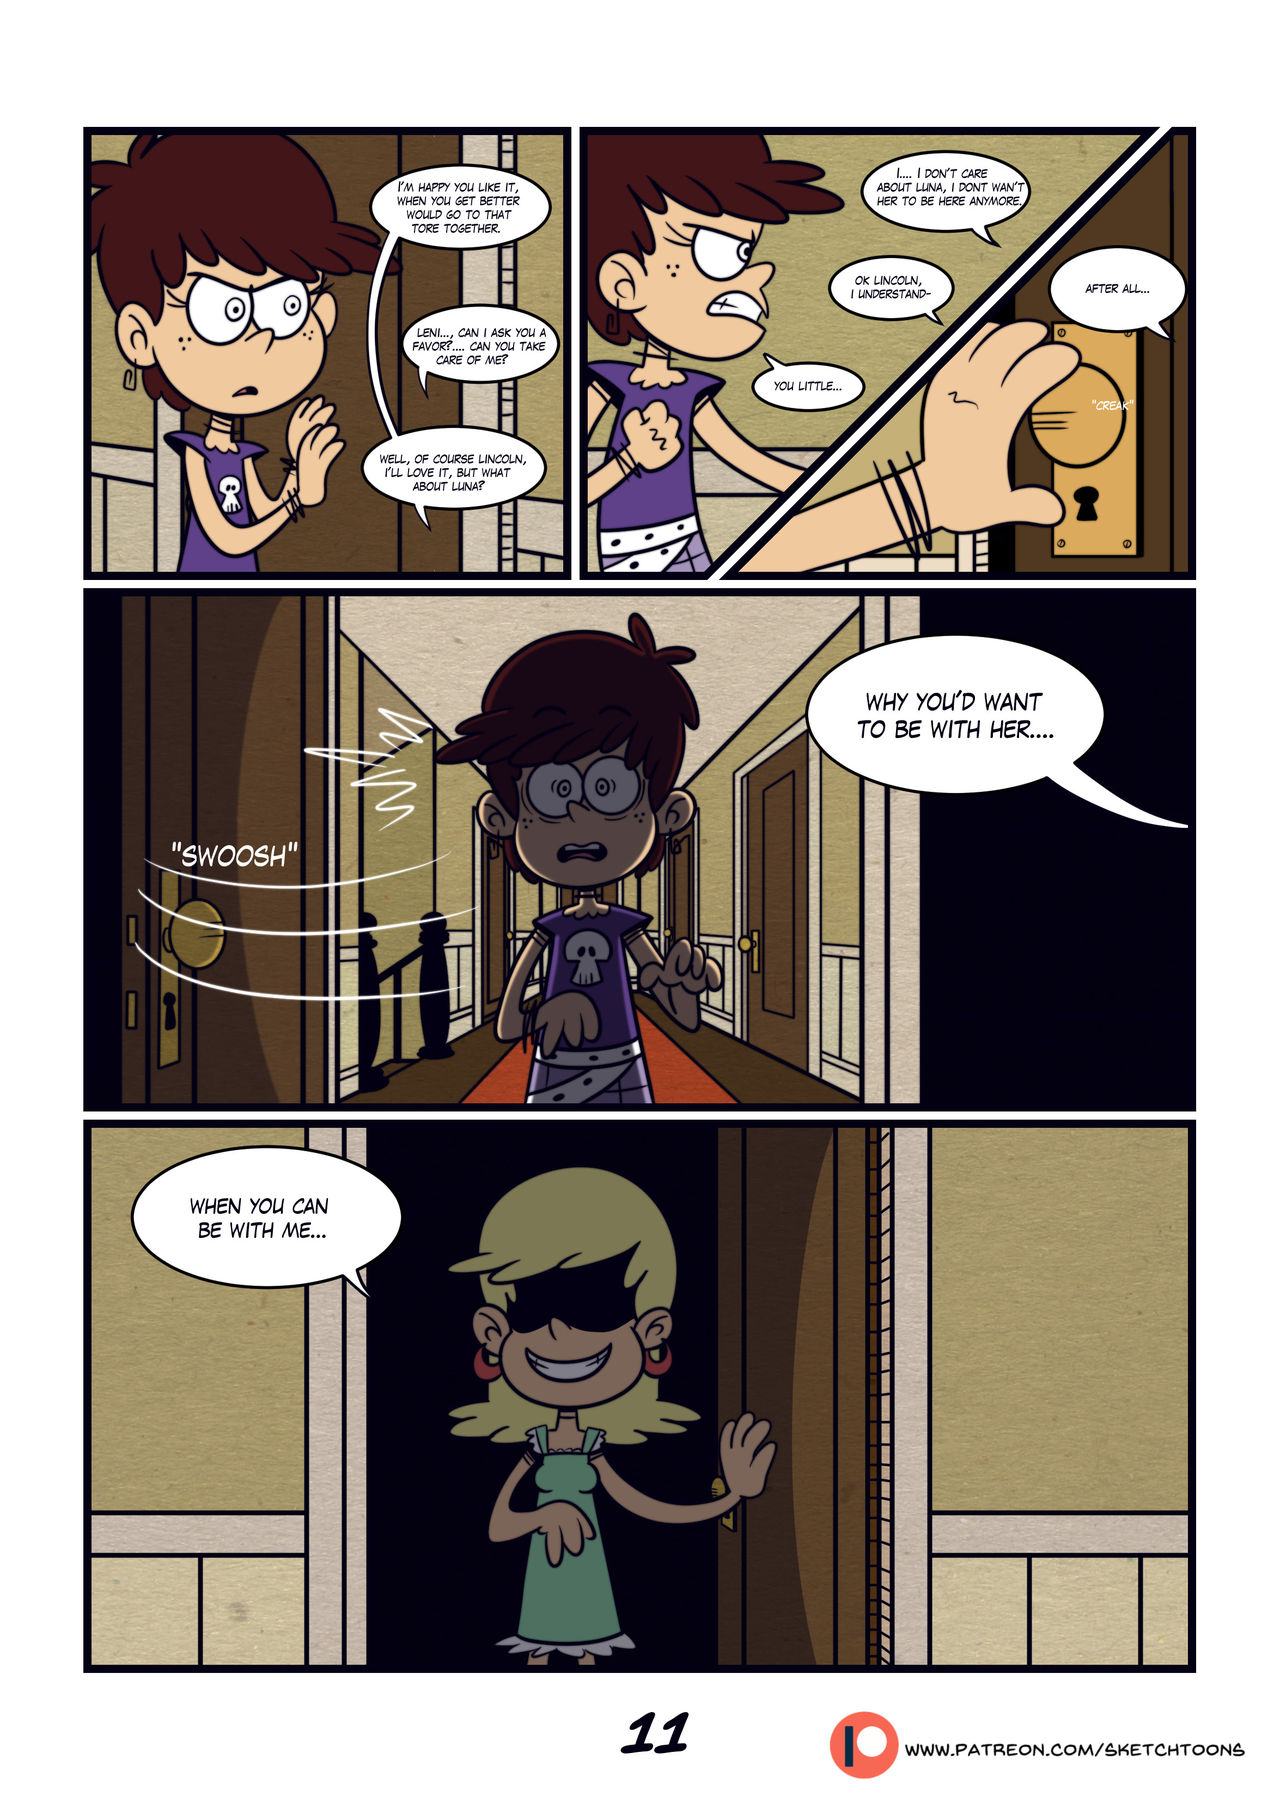 The Secret ch.II- Sketch Toons (The loud house)